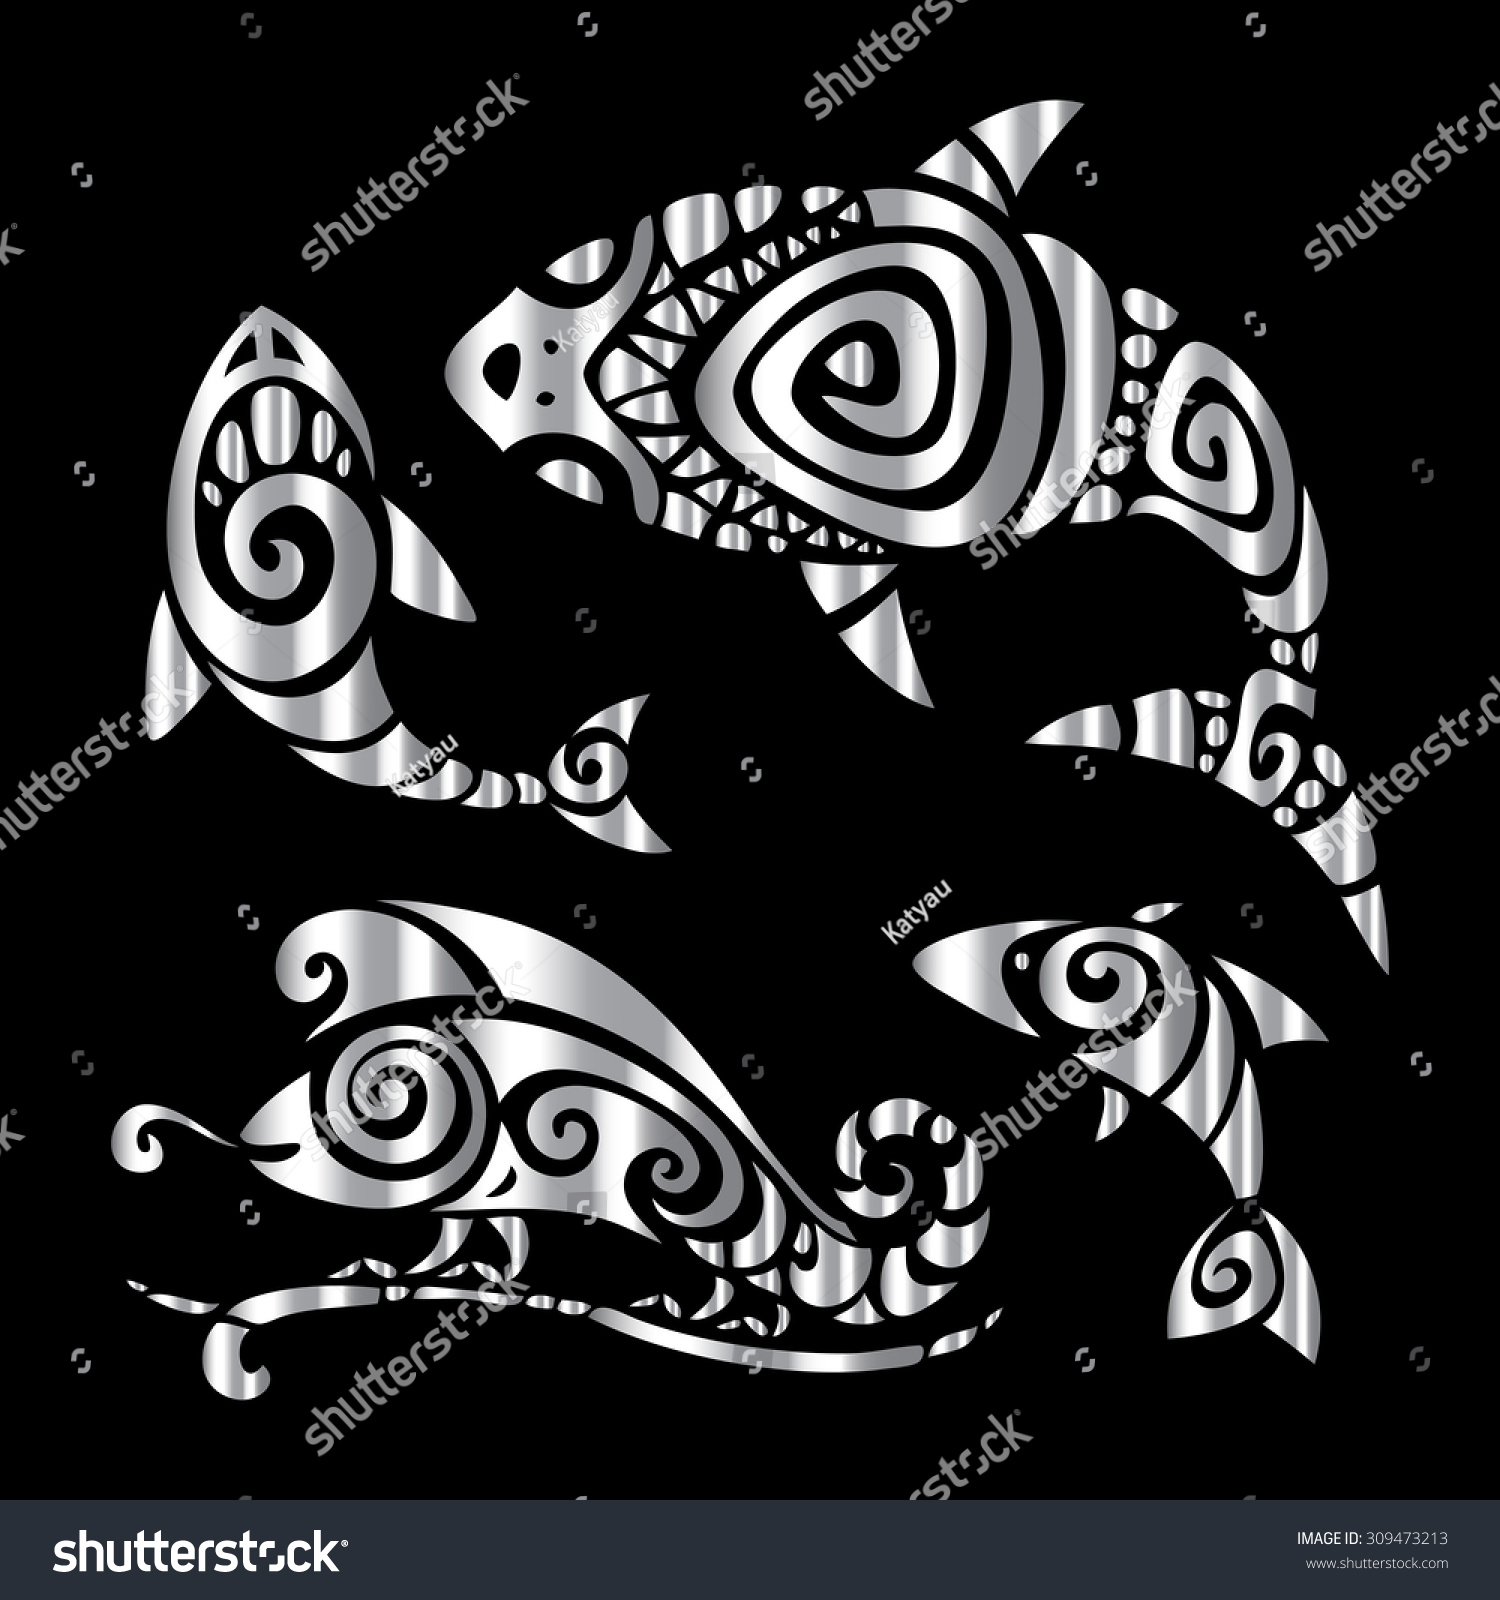 Aztec Chameleon Tattoo: Shark Fish Chameleon Tribal Pattern Set Stock Vector